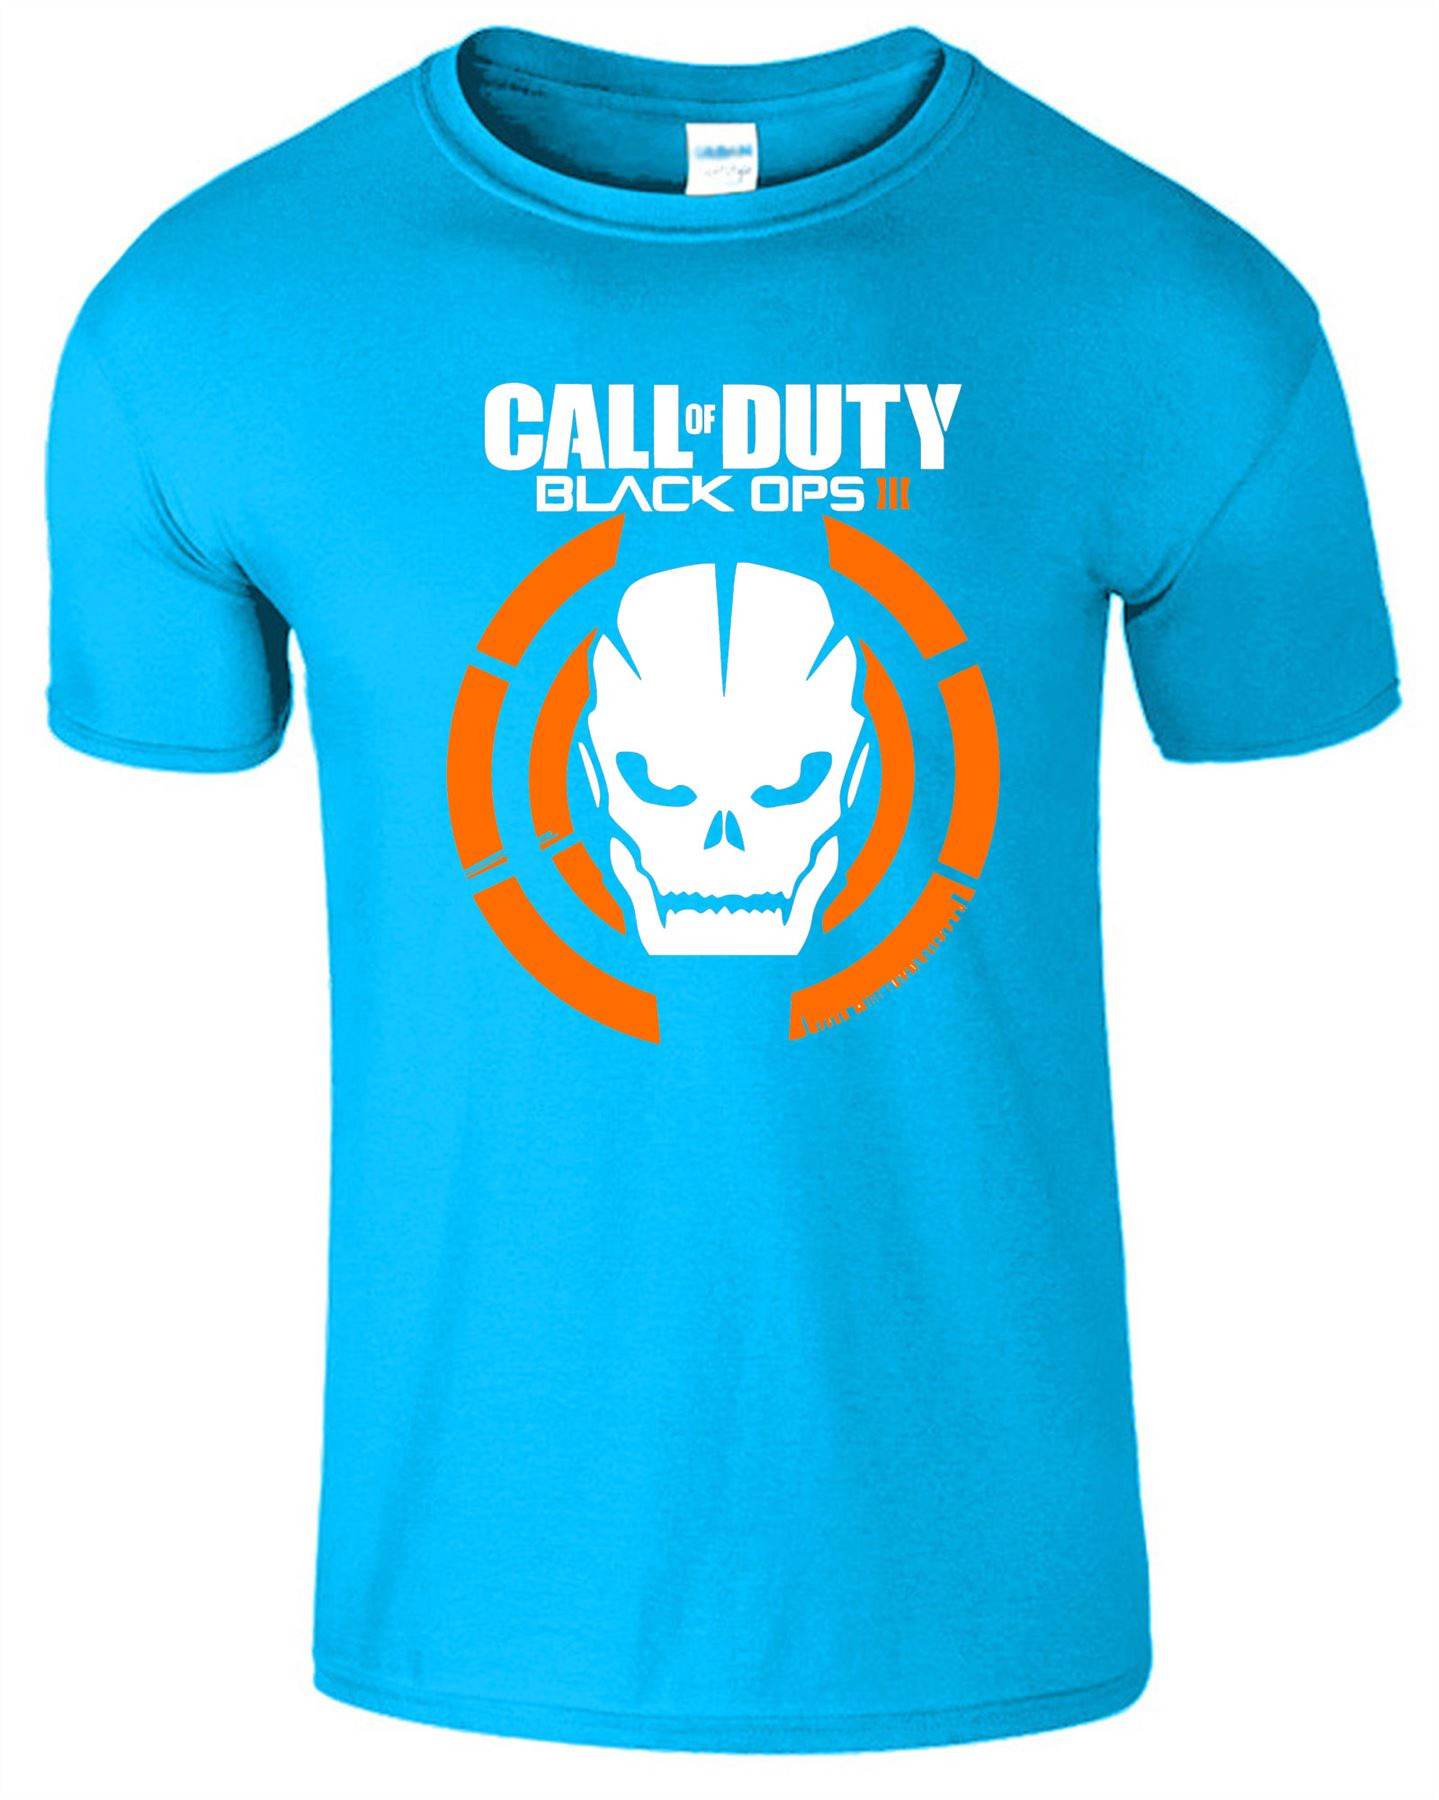 Duty-Black-Ops-Xbox-PS3-PS4-Game-Logo-With-Skull-Mens-Tshirt-Tee-Top-Gift miniatuur 15